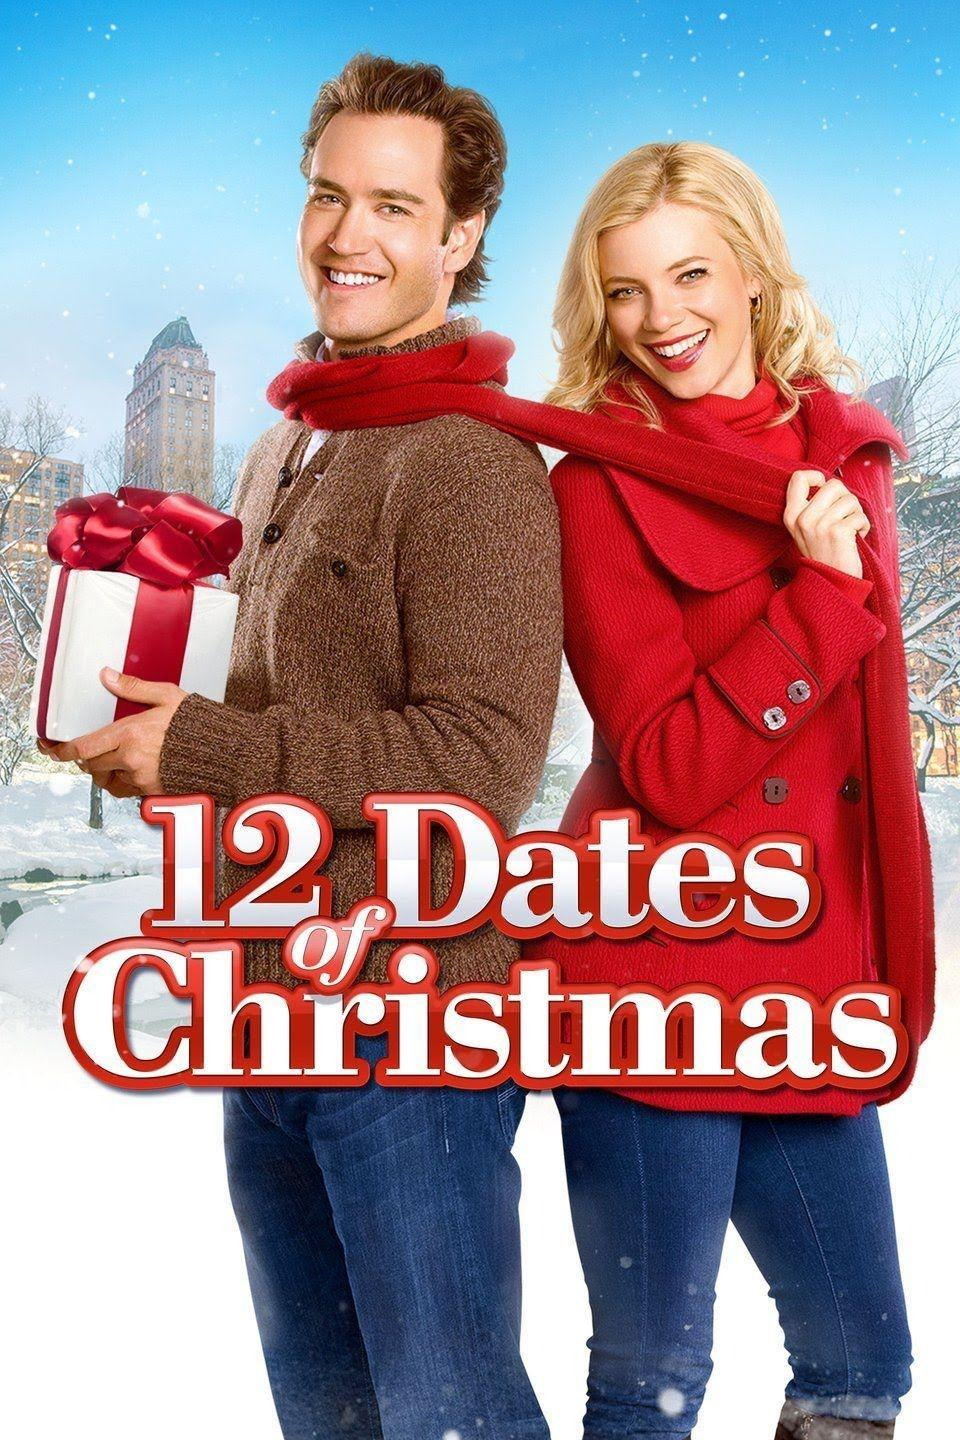 """<p>Kate and Miles just met for a Christmas Eve blind date. In this sweet romantic comedy, Kate (played by Amy Smart) finds herself reliving the same date over and over as she lets herself discover love again. Mark-Paul Gosselaar plays Miles.</p><p><a class=""""link rapid-noclick-resp"""" href=""""https://www.amazon.com/12-Dates-Christmas-James-Hayman/dp/B01MXWHC50/?tag=syn-yahoo-20&ascsubtag=%5Bartid%7C10050.g.5060%5Bsrc%7Cyahoo-us"""" rel=""""nofollow noopener"""" target=""""_blank"""" data-ylk=""""slk:STREAM IT ON PRIME"""">STREAM IT ON PRIME</a></p><p><a class=""""link rapid-noclick-resp"""" href=""""https://go.redirectingat.com?id=74968X1596630&url=https%3A%2F%2Fwww.disneyplus.com%2Fmovies%2F12-dates-of-christmas%2FDEErw9OHtOQB&sref=https%3A%2F%2Fwww.countryliving.com%2Flife%2Fentertainment%2Fg5060%2Fbest-disney-christmas-movies%2F"""" rel=""""nofollow noopener"""" target=""""_blank"""" data-ylk=""""slk:STREAM IT ON DISNEY+"""">STREAM IT ON DISNEY+</a><br></p>"""